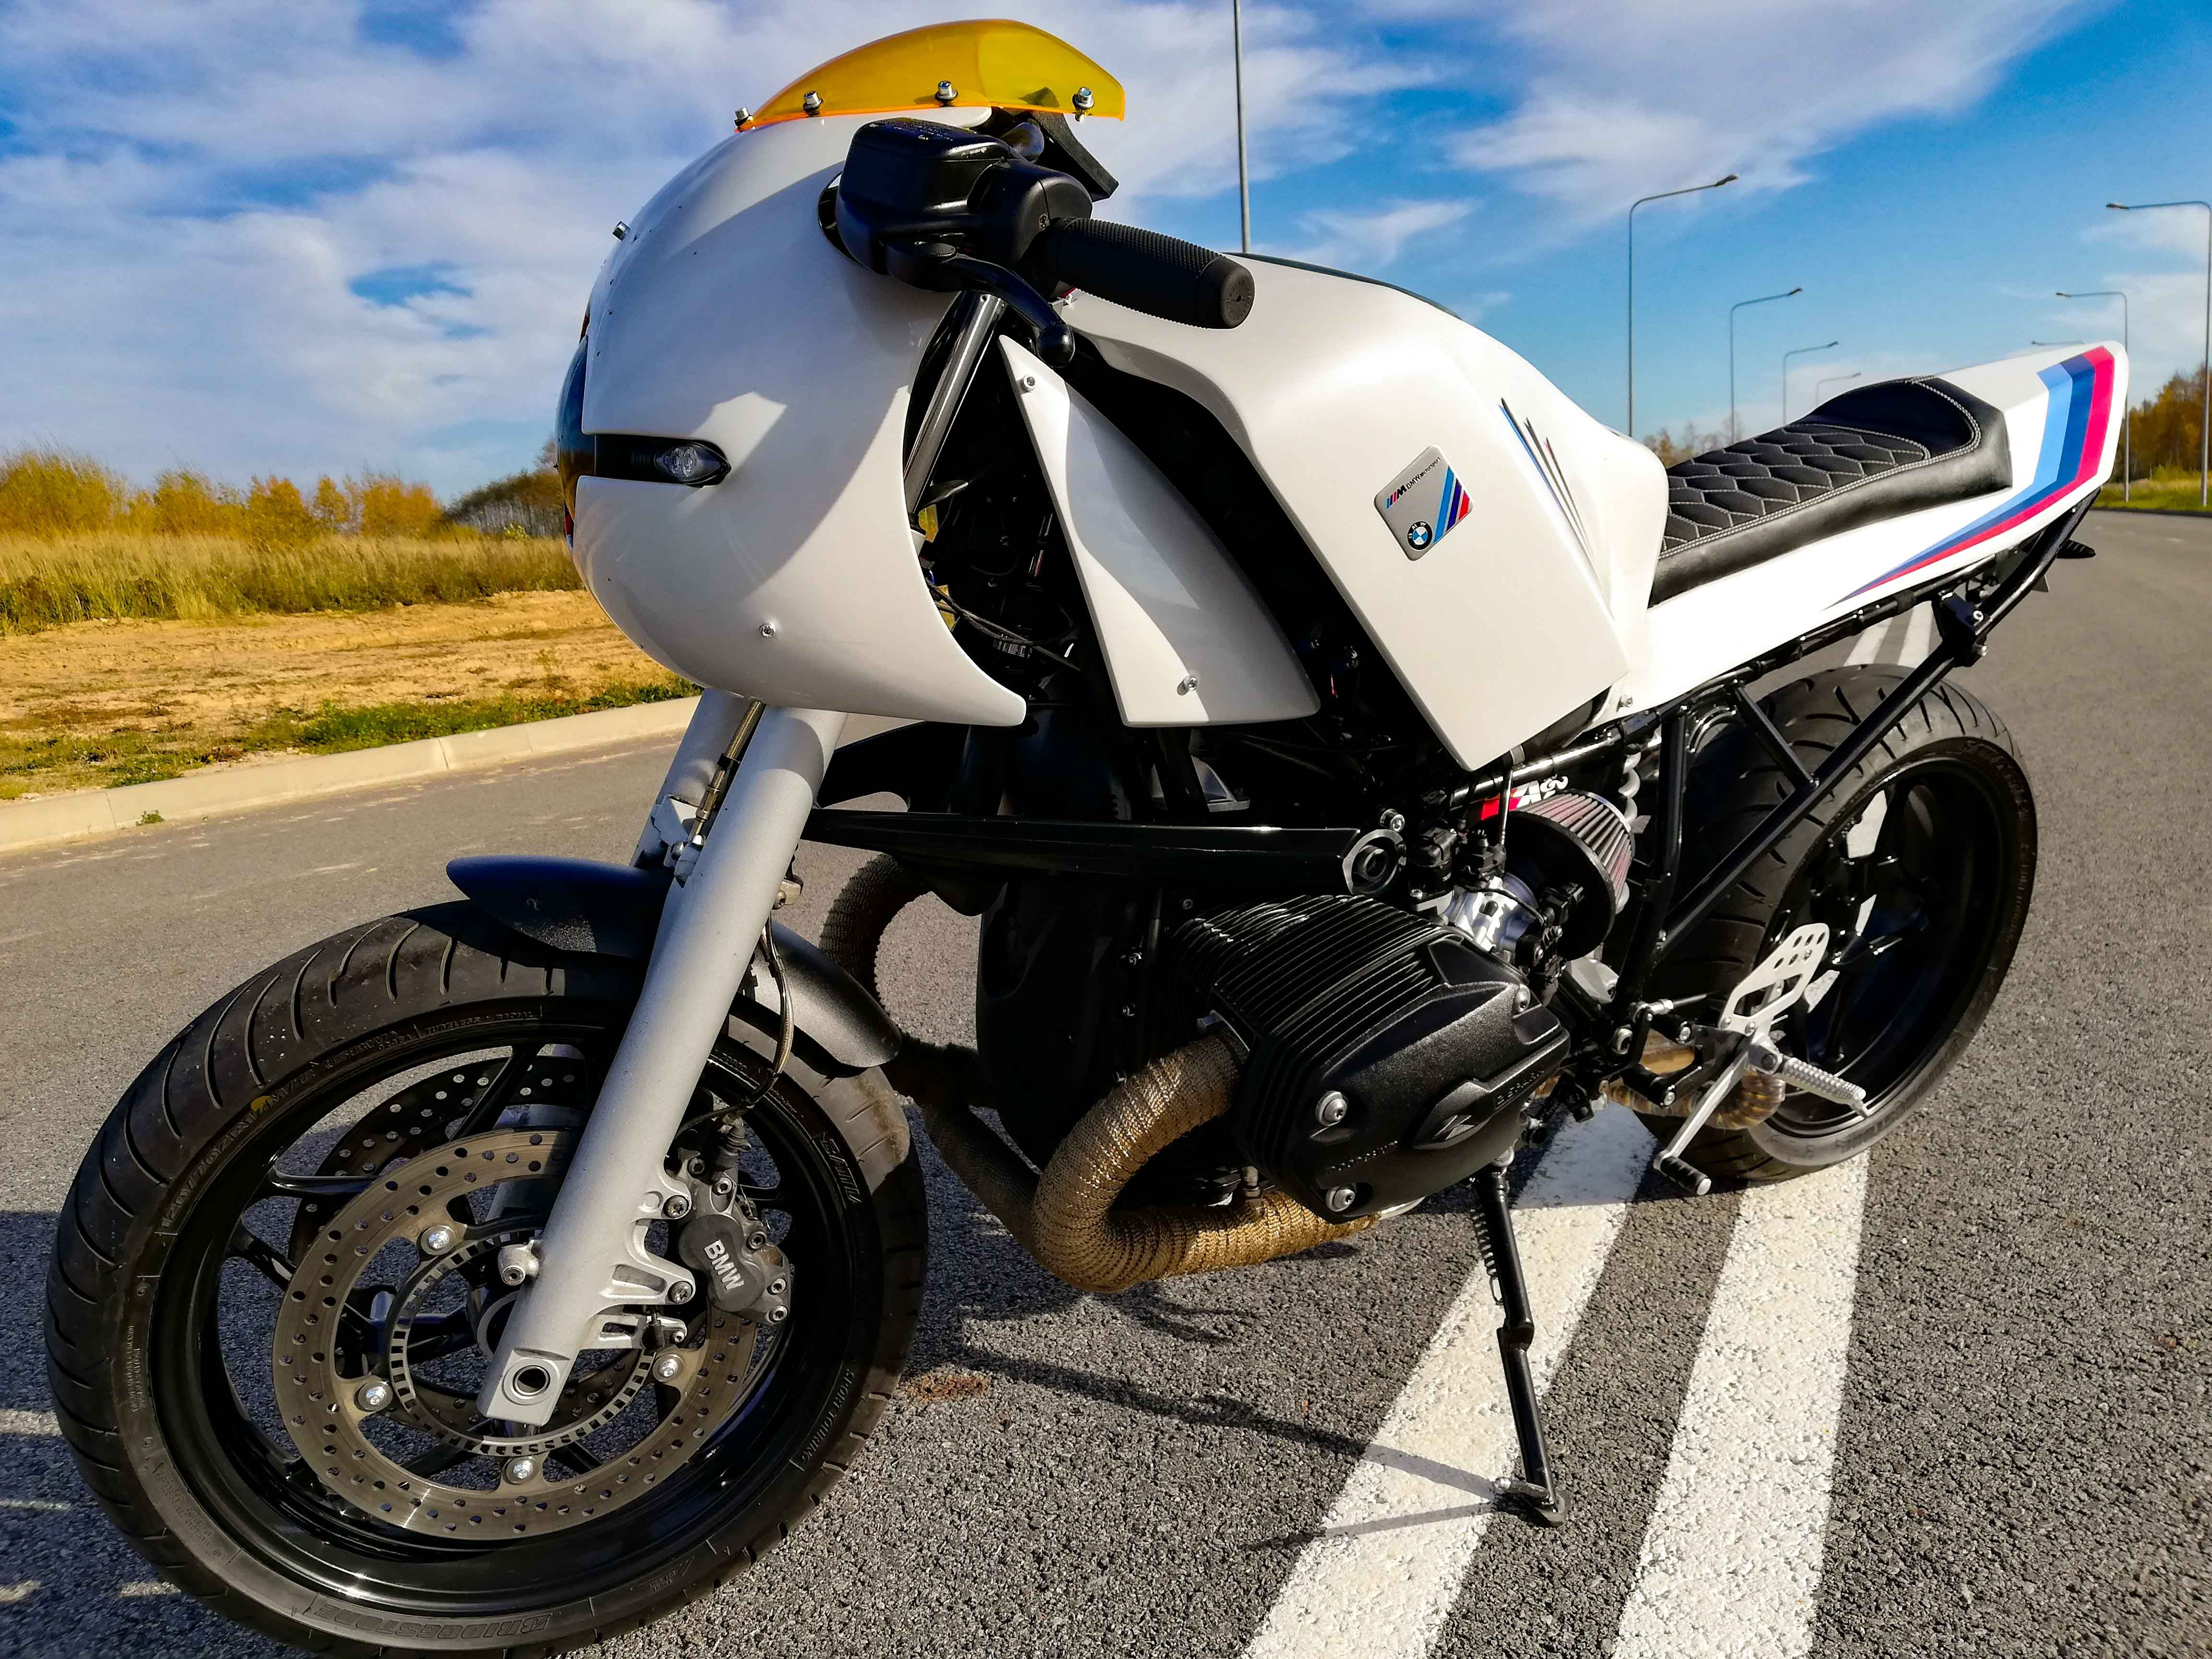 Bmw R1200rt Cafe Racer By Si Mantas Cafe Racers Pinterest Bmw